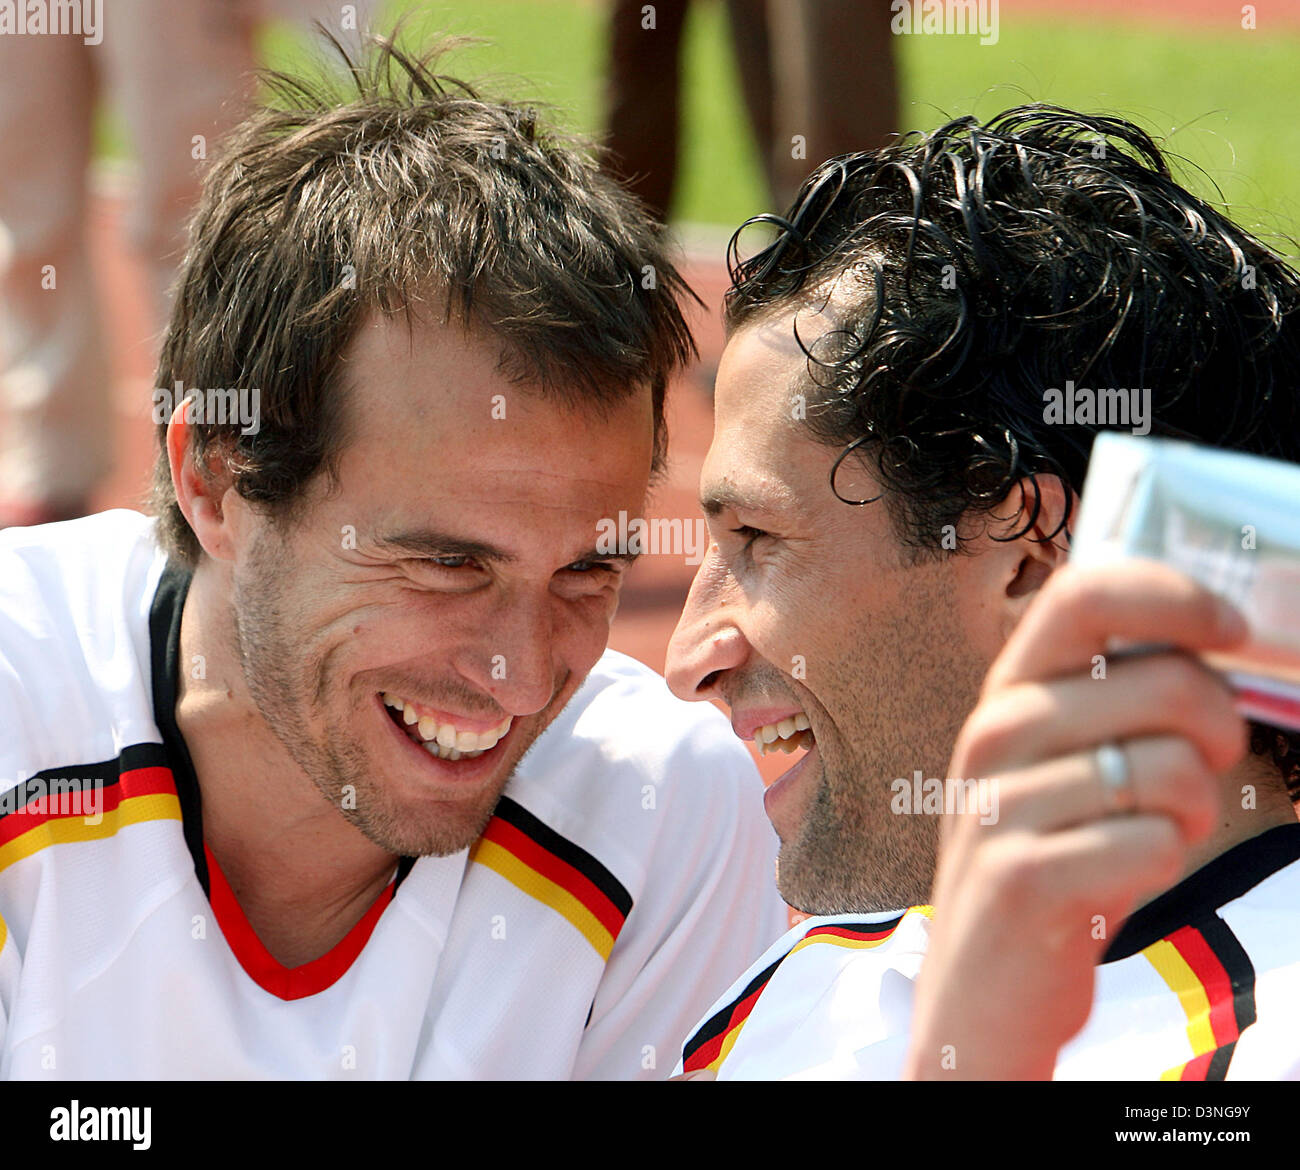 Bayern Muenchen players Mehmet Scholl (L) and Hasan Salihamidzic laugh during their team's friendly match against - Stock Image